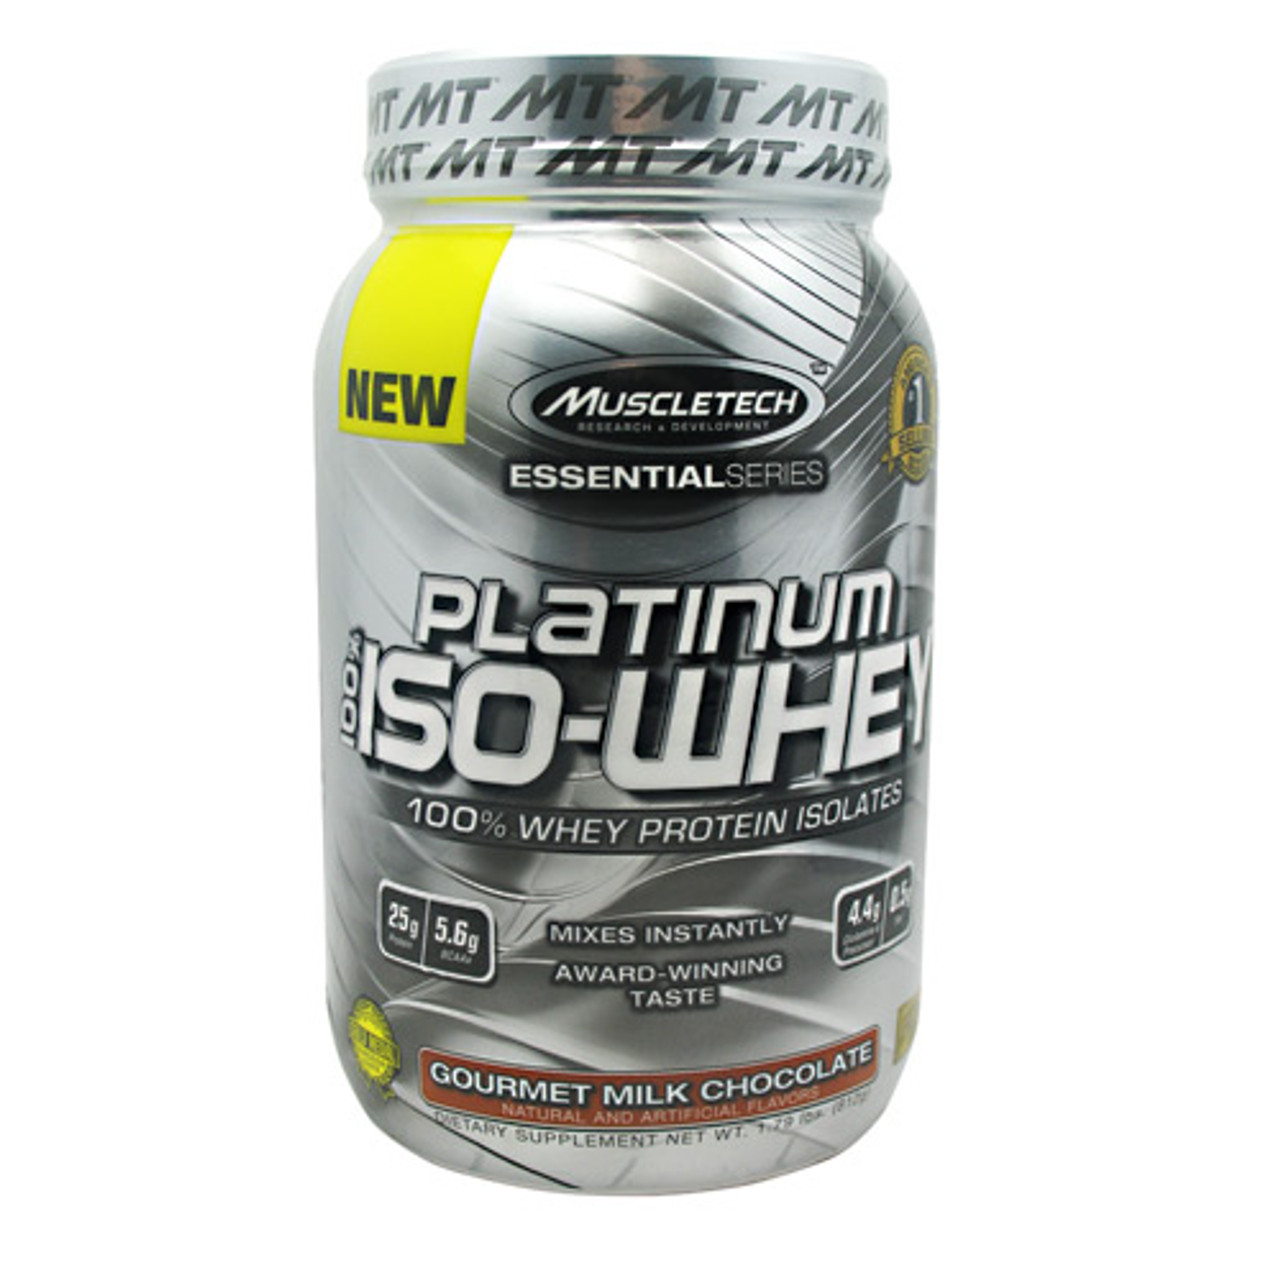 100% Platinum Iso-Whey 1.75lb Muscletech